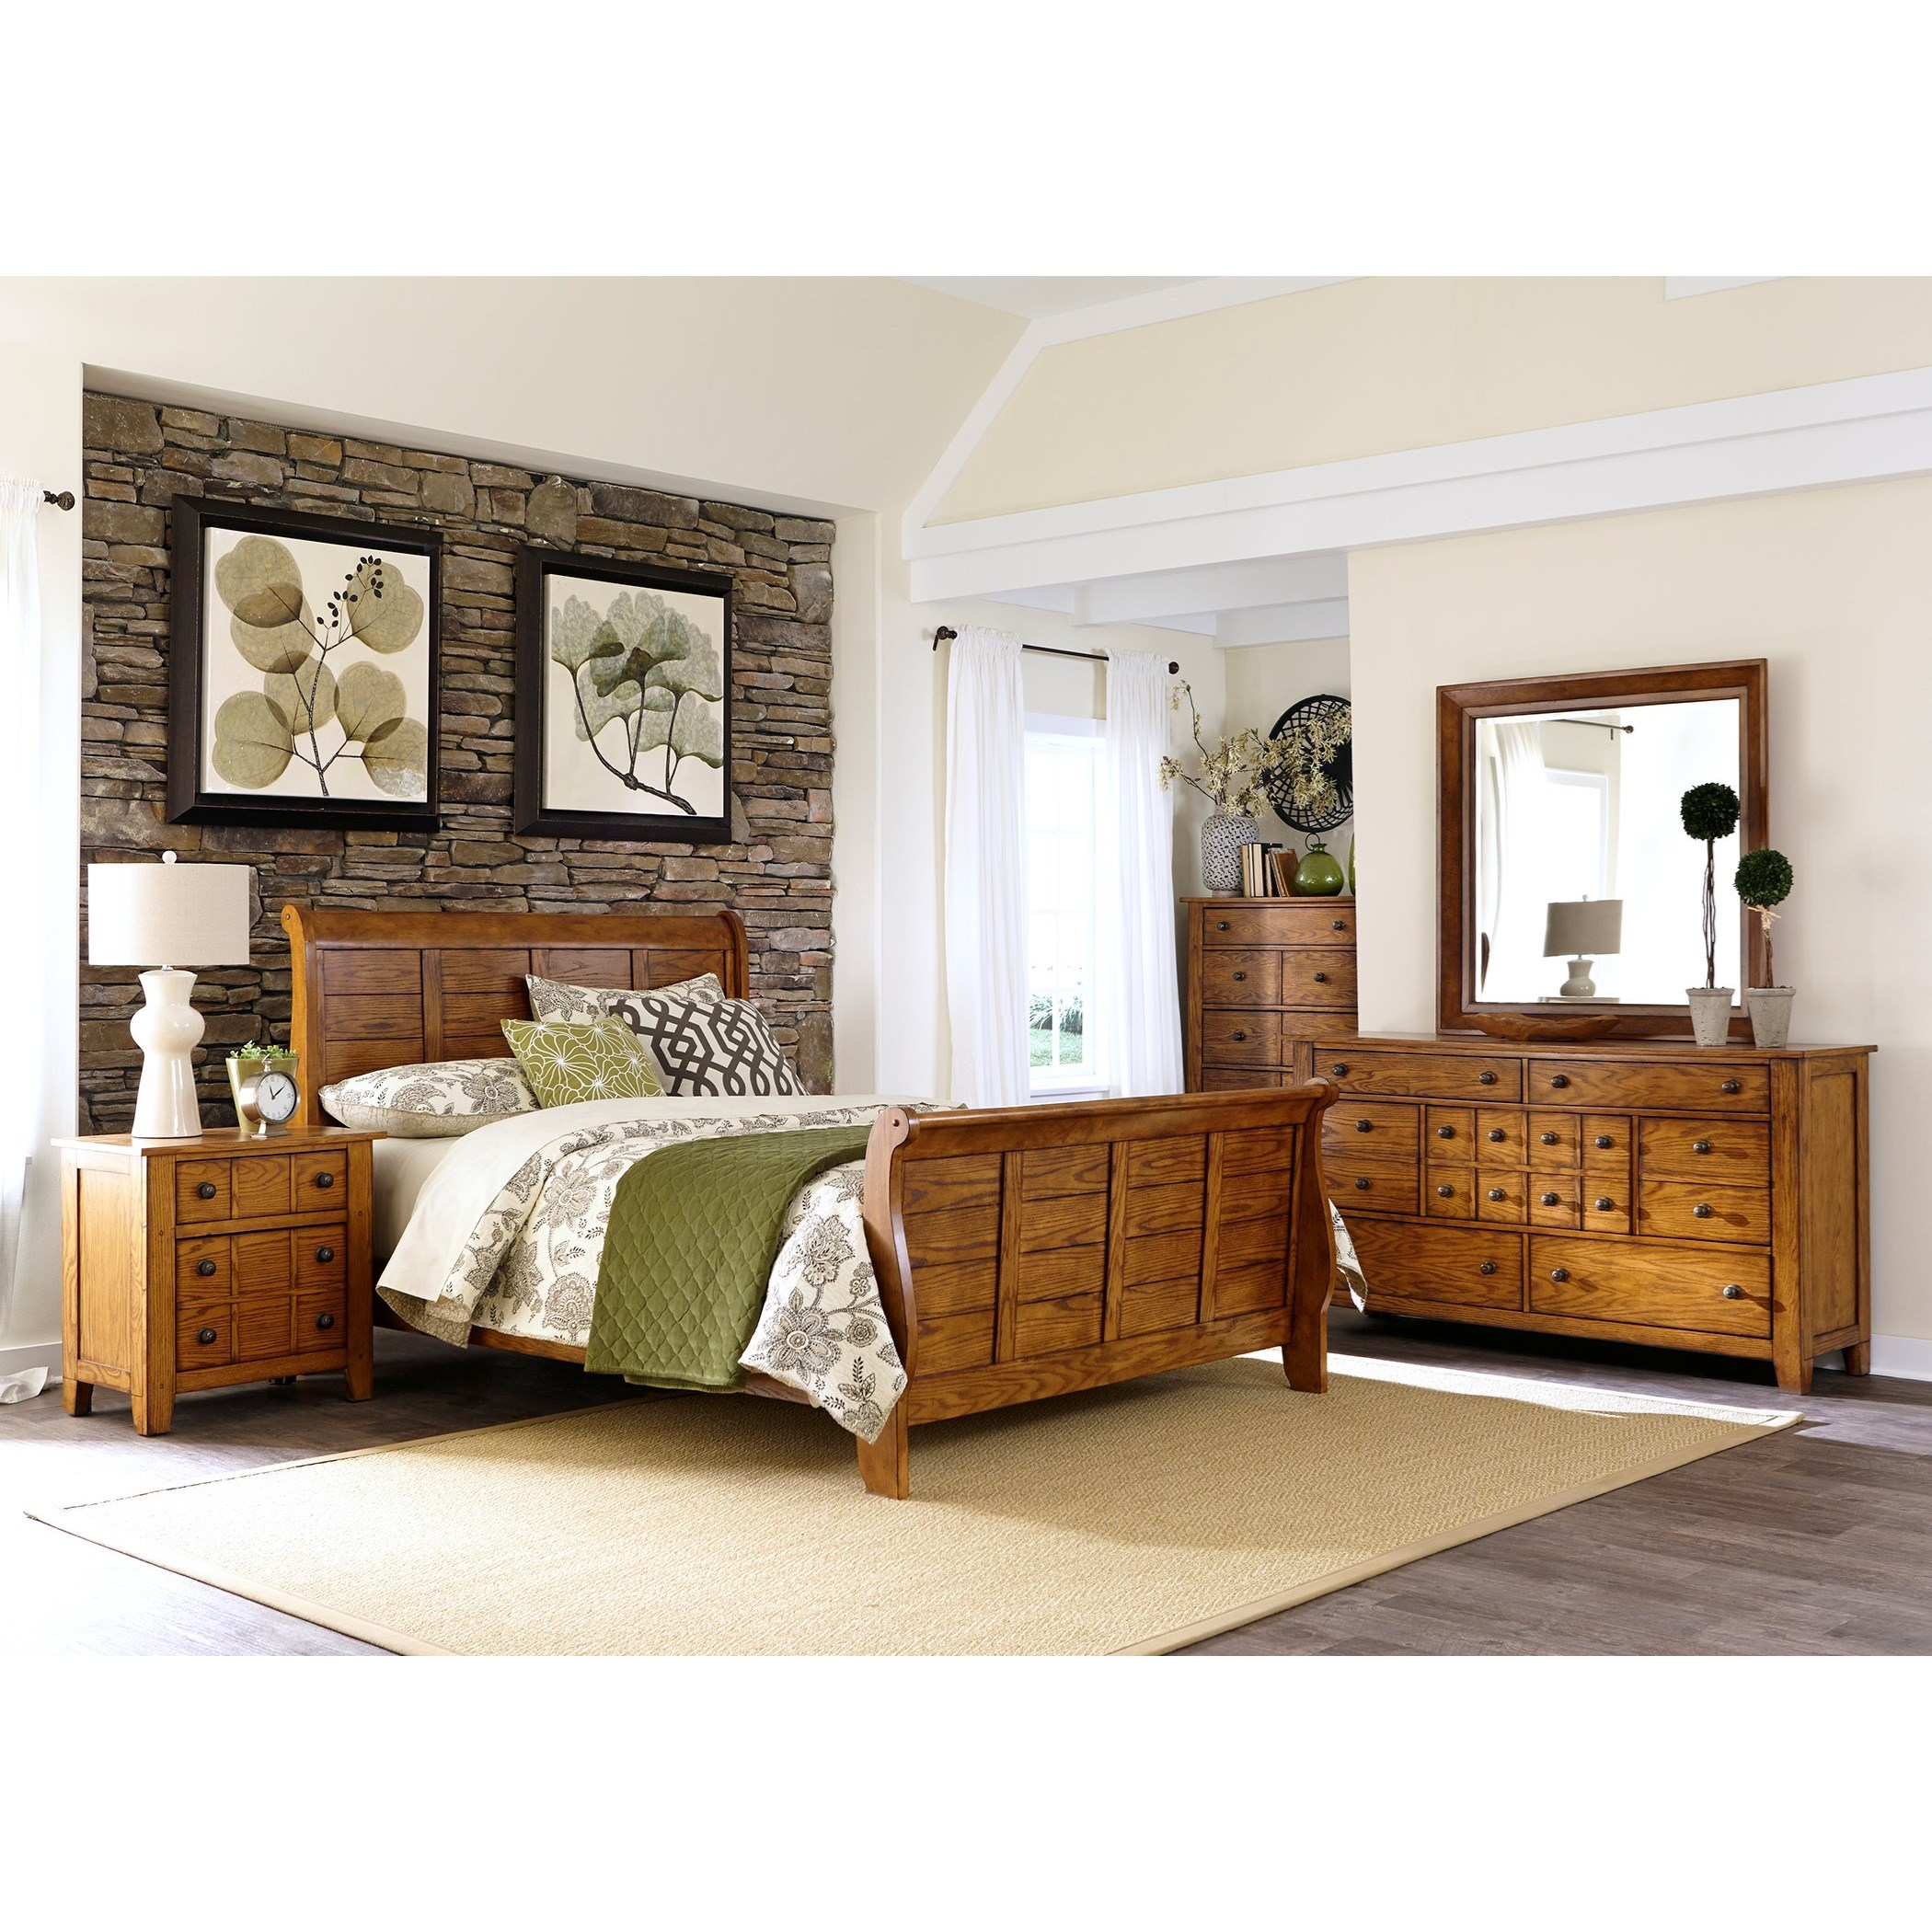 Grandpa's Cabin King Bedroom Group by Libby at Walker's Furniture